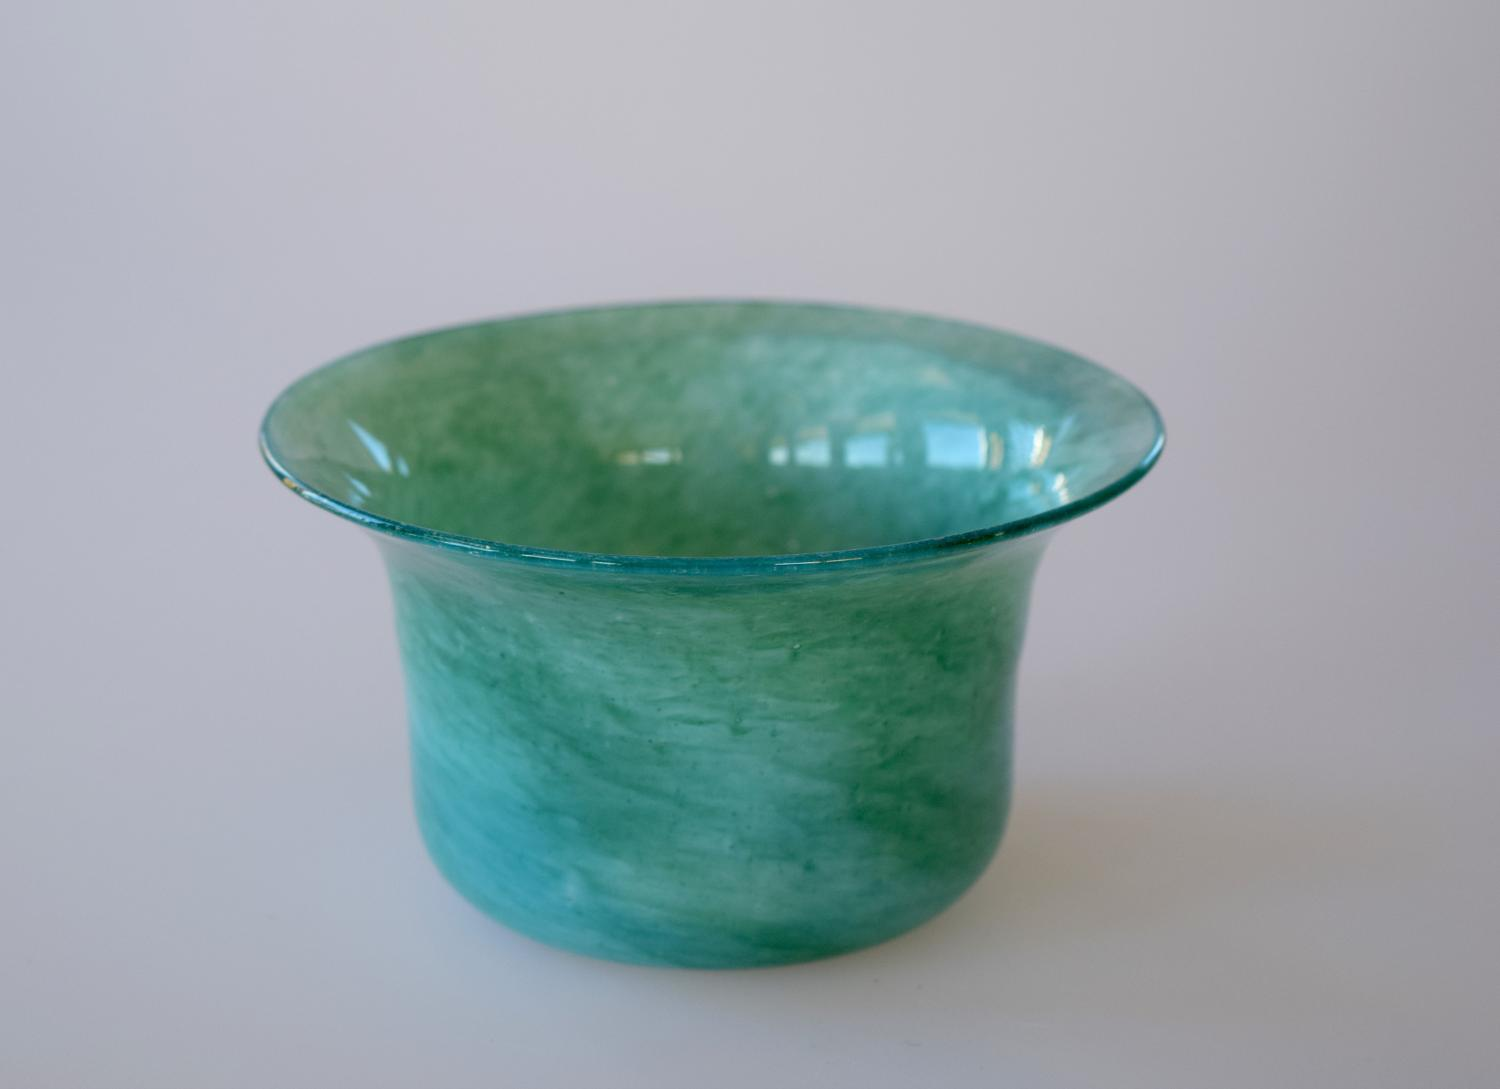 Small blue/green cloudy bowl.